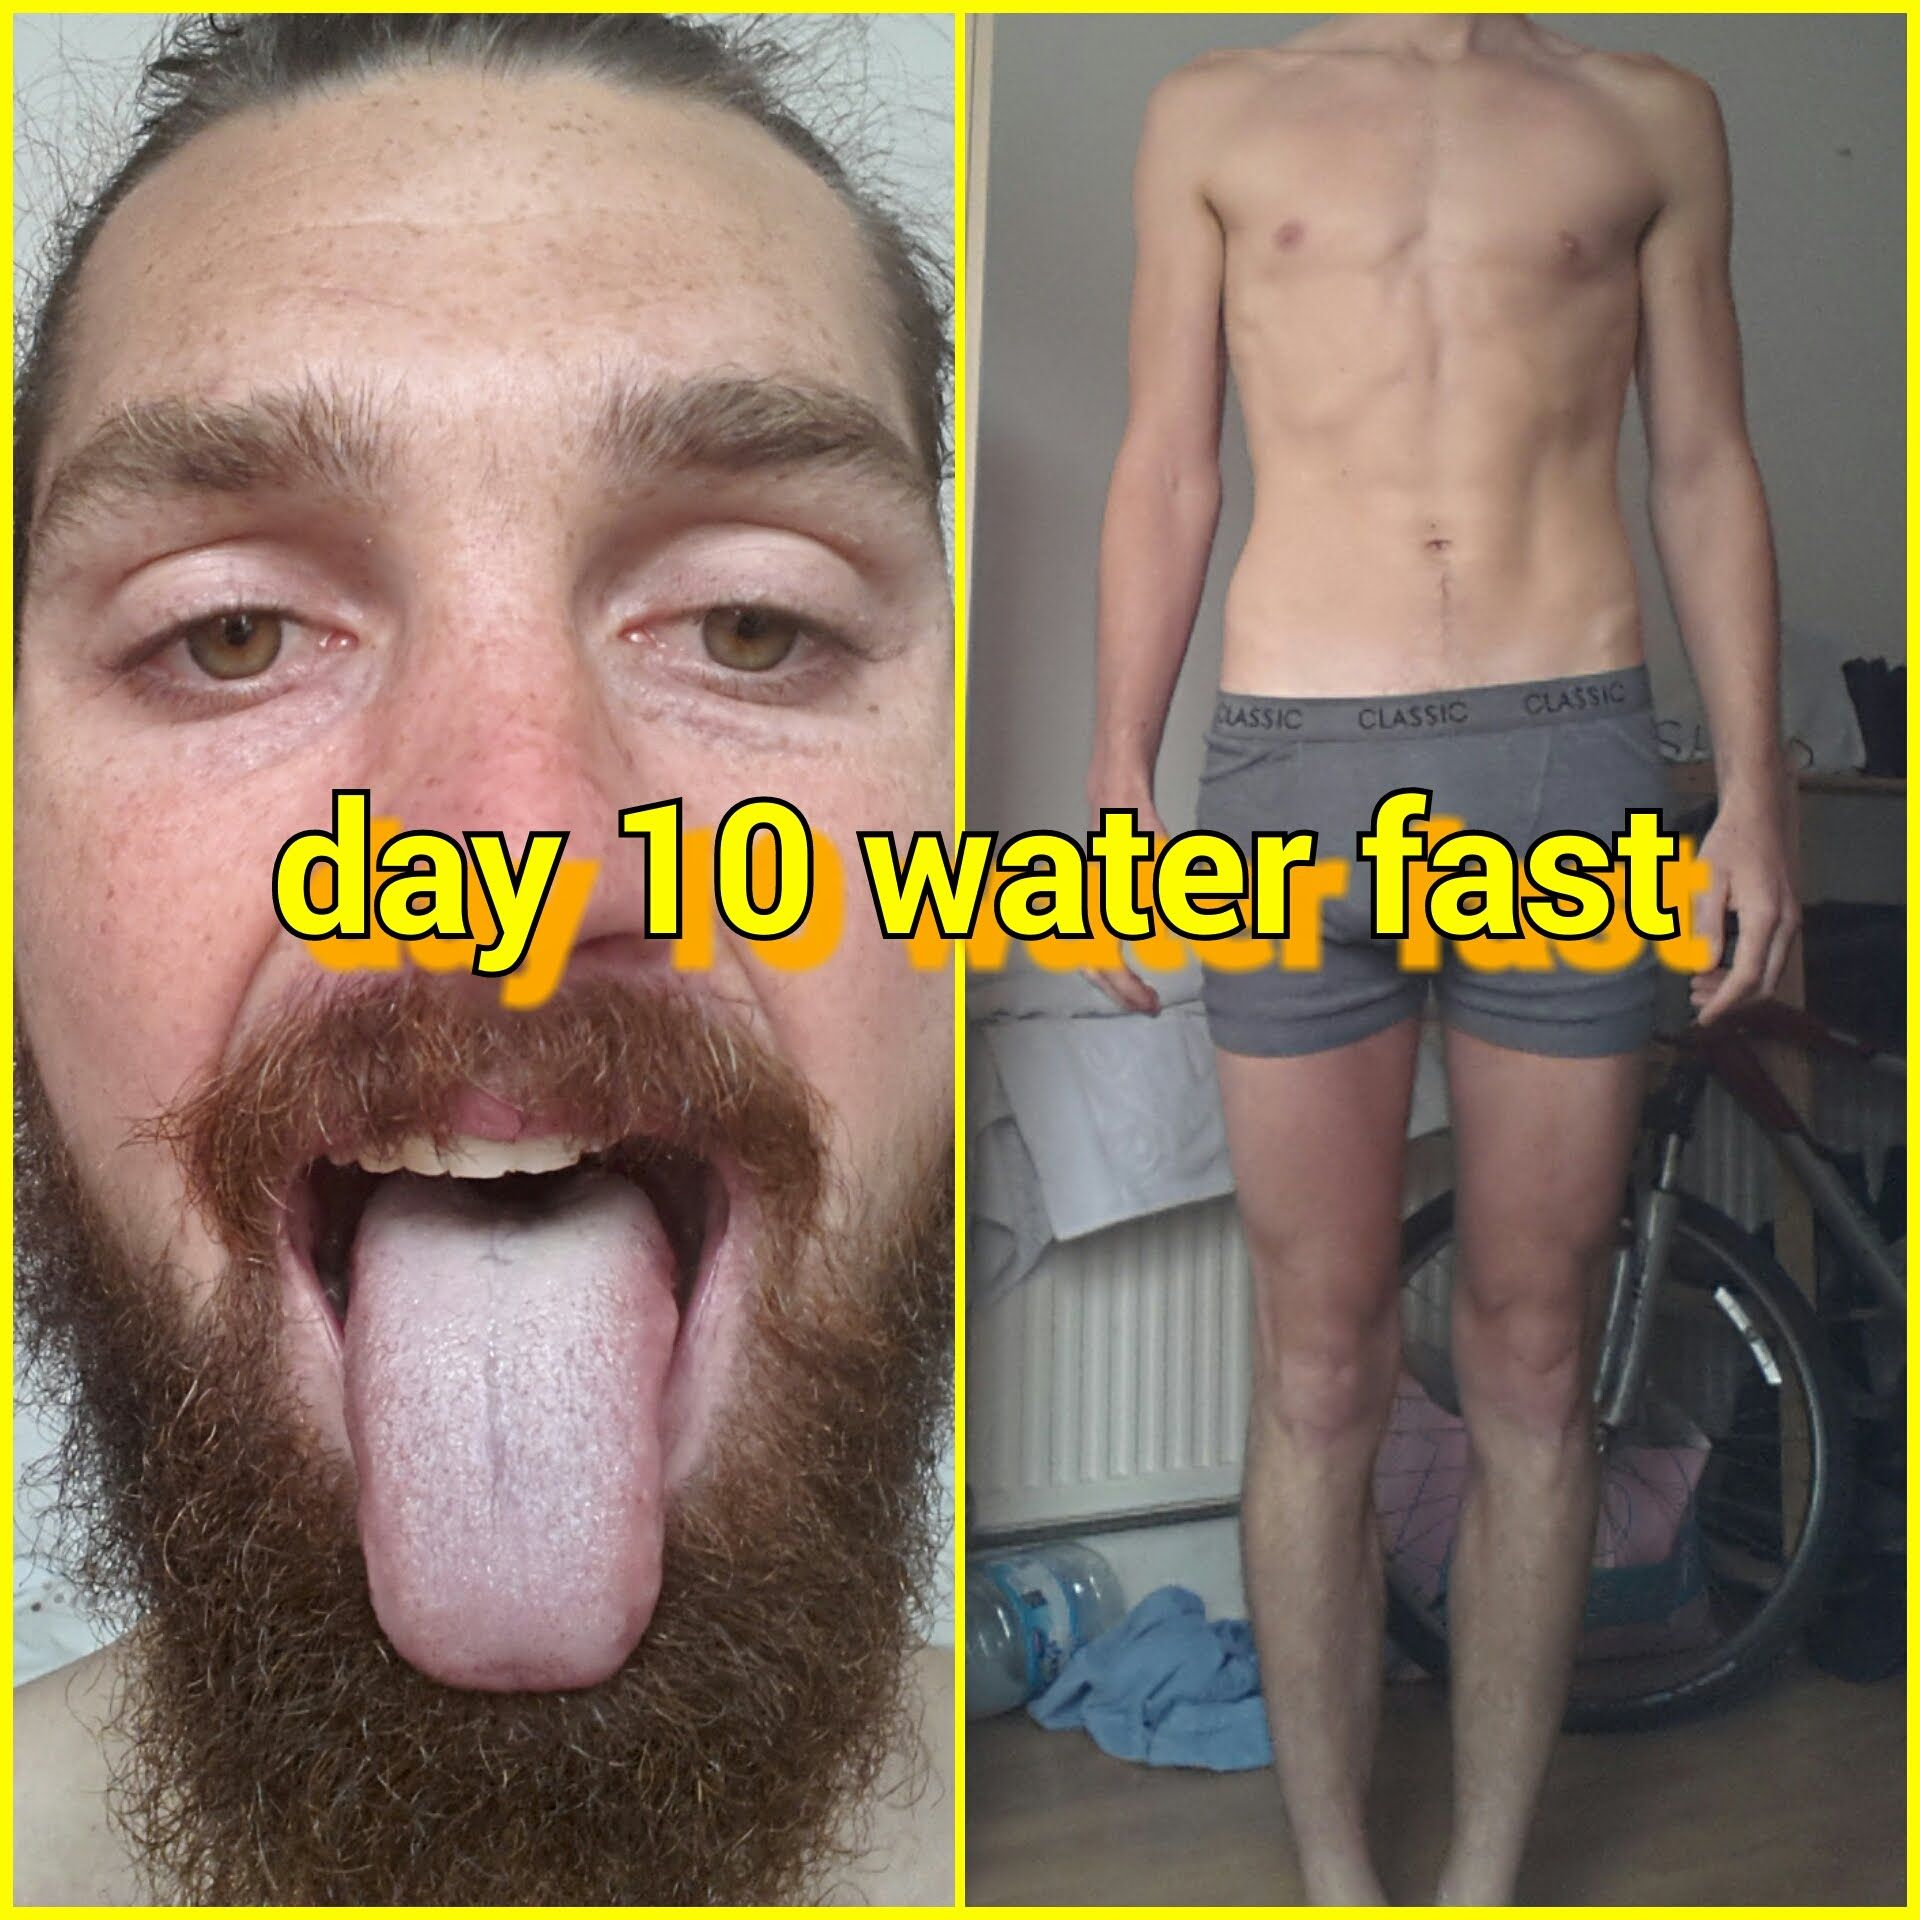 how to cut weight in 20 days